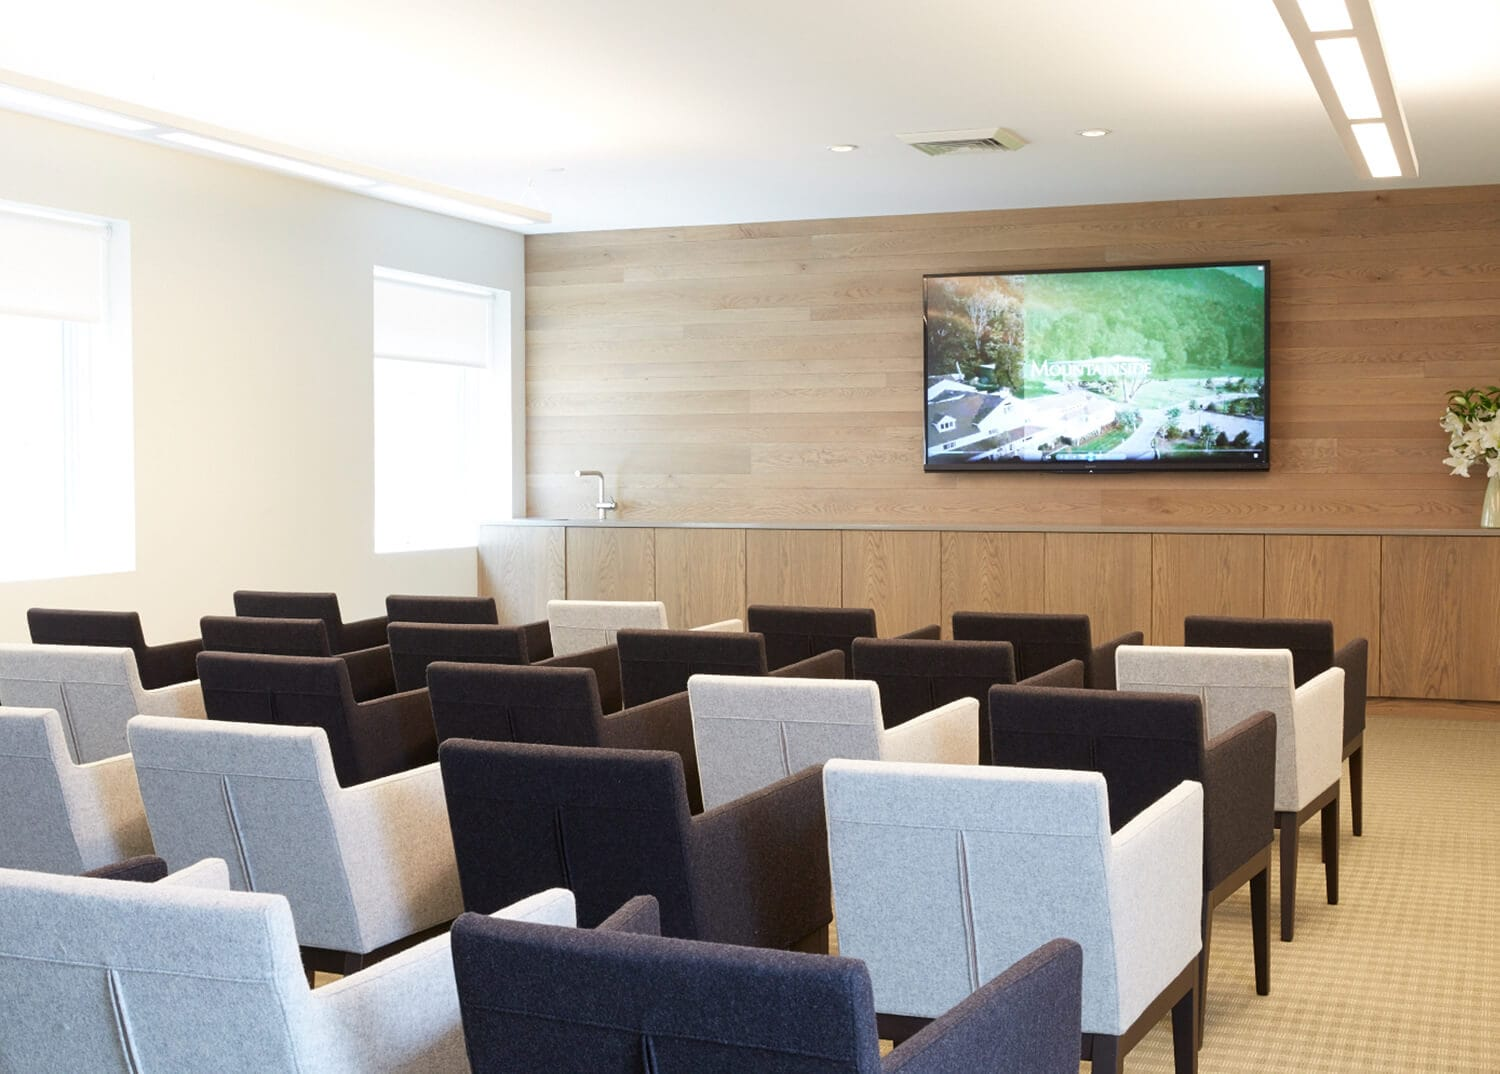 Auditorium and TV Room at Mountainside Addiction Treatment Center, NY NJ, CT.